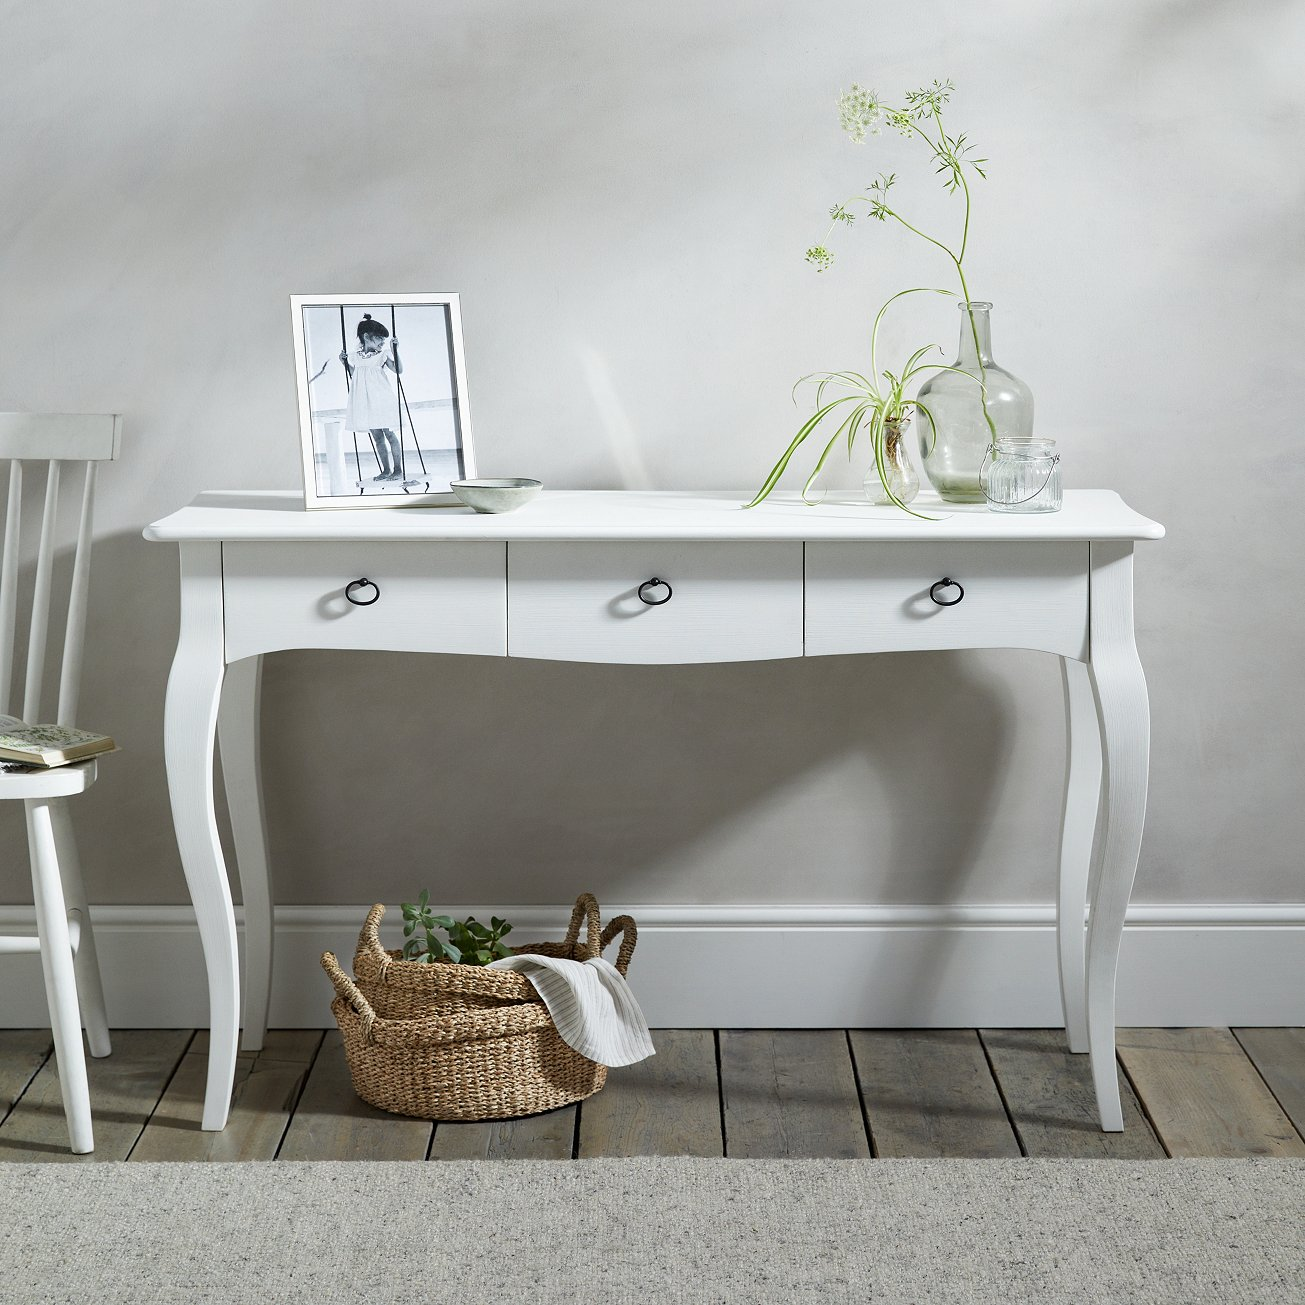 If you are looking to add a dab of understated elegance and style to your hallway, then look no further than the Provence Console Table. The vintage French design has all the curves you could desire with three deep drawers for storage. - £450.00